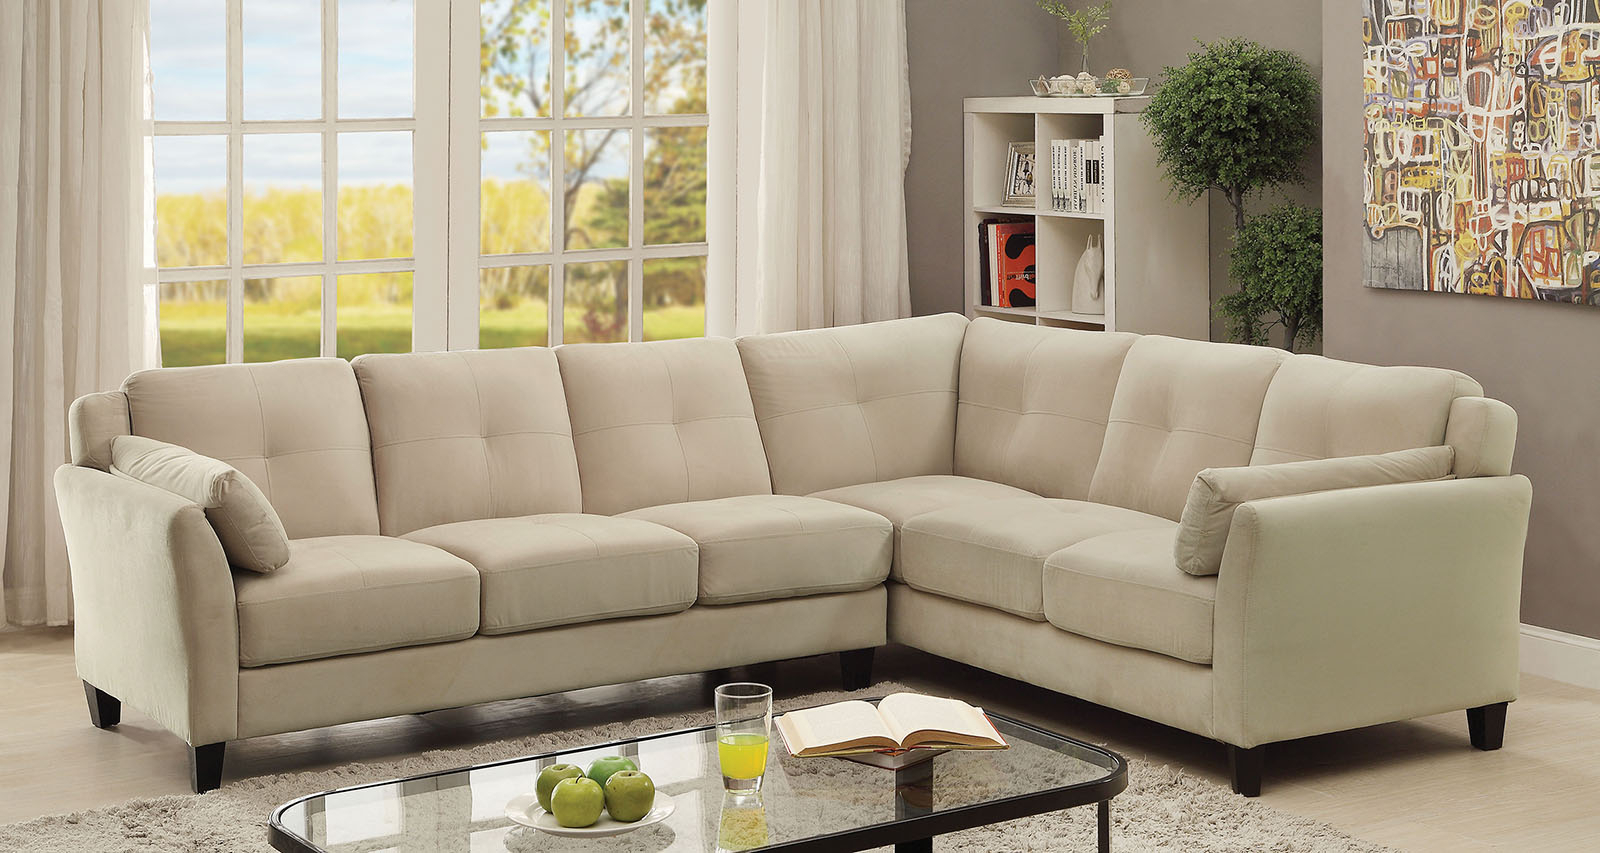 Most Popular 6368bg Beige Contemporary Sectional Sofa Furniture Of With Regard To Beige Sofas (View 14 of 20)